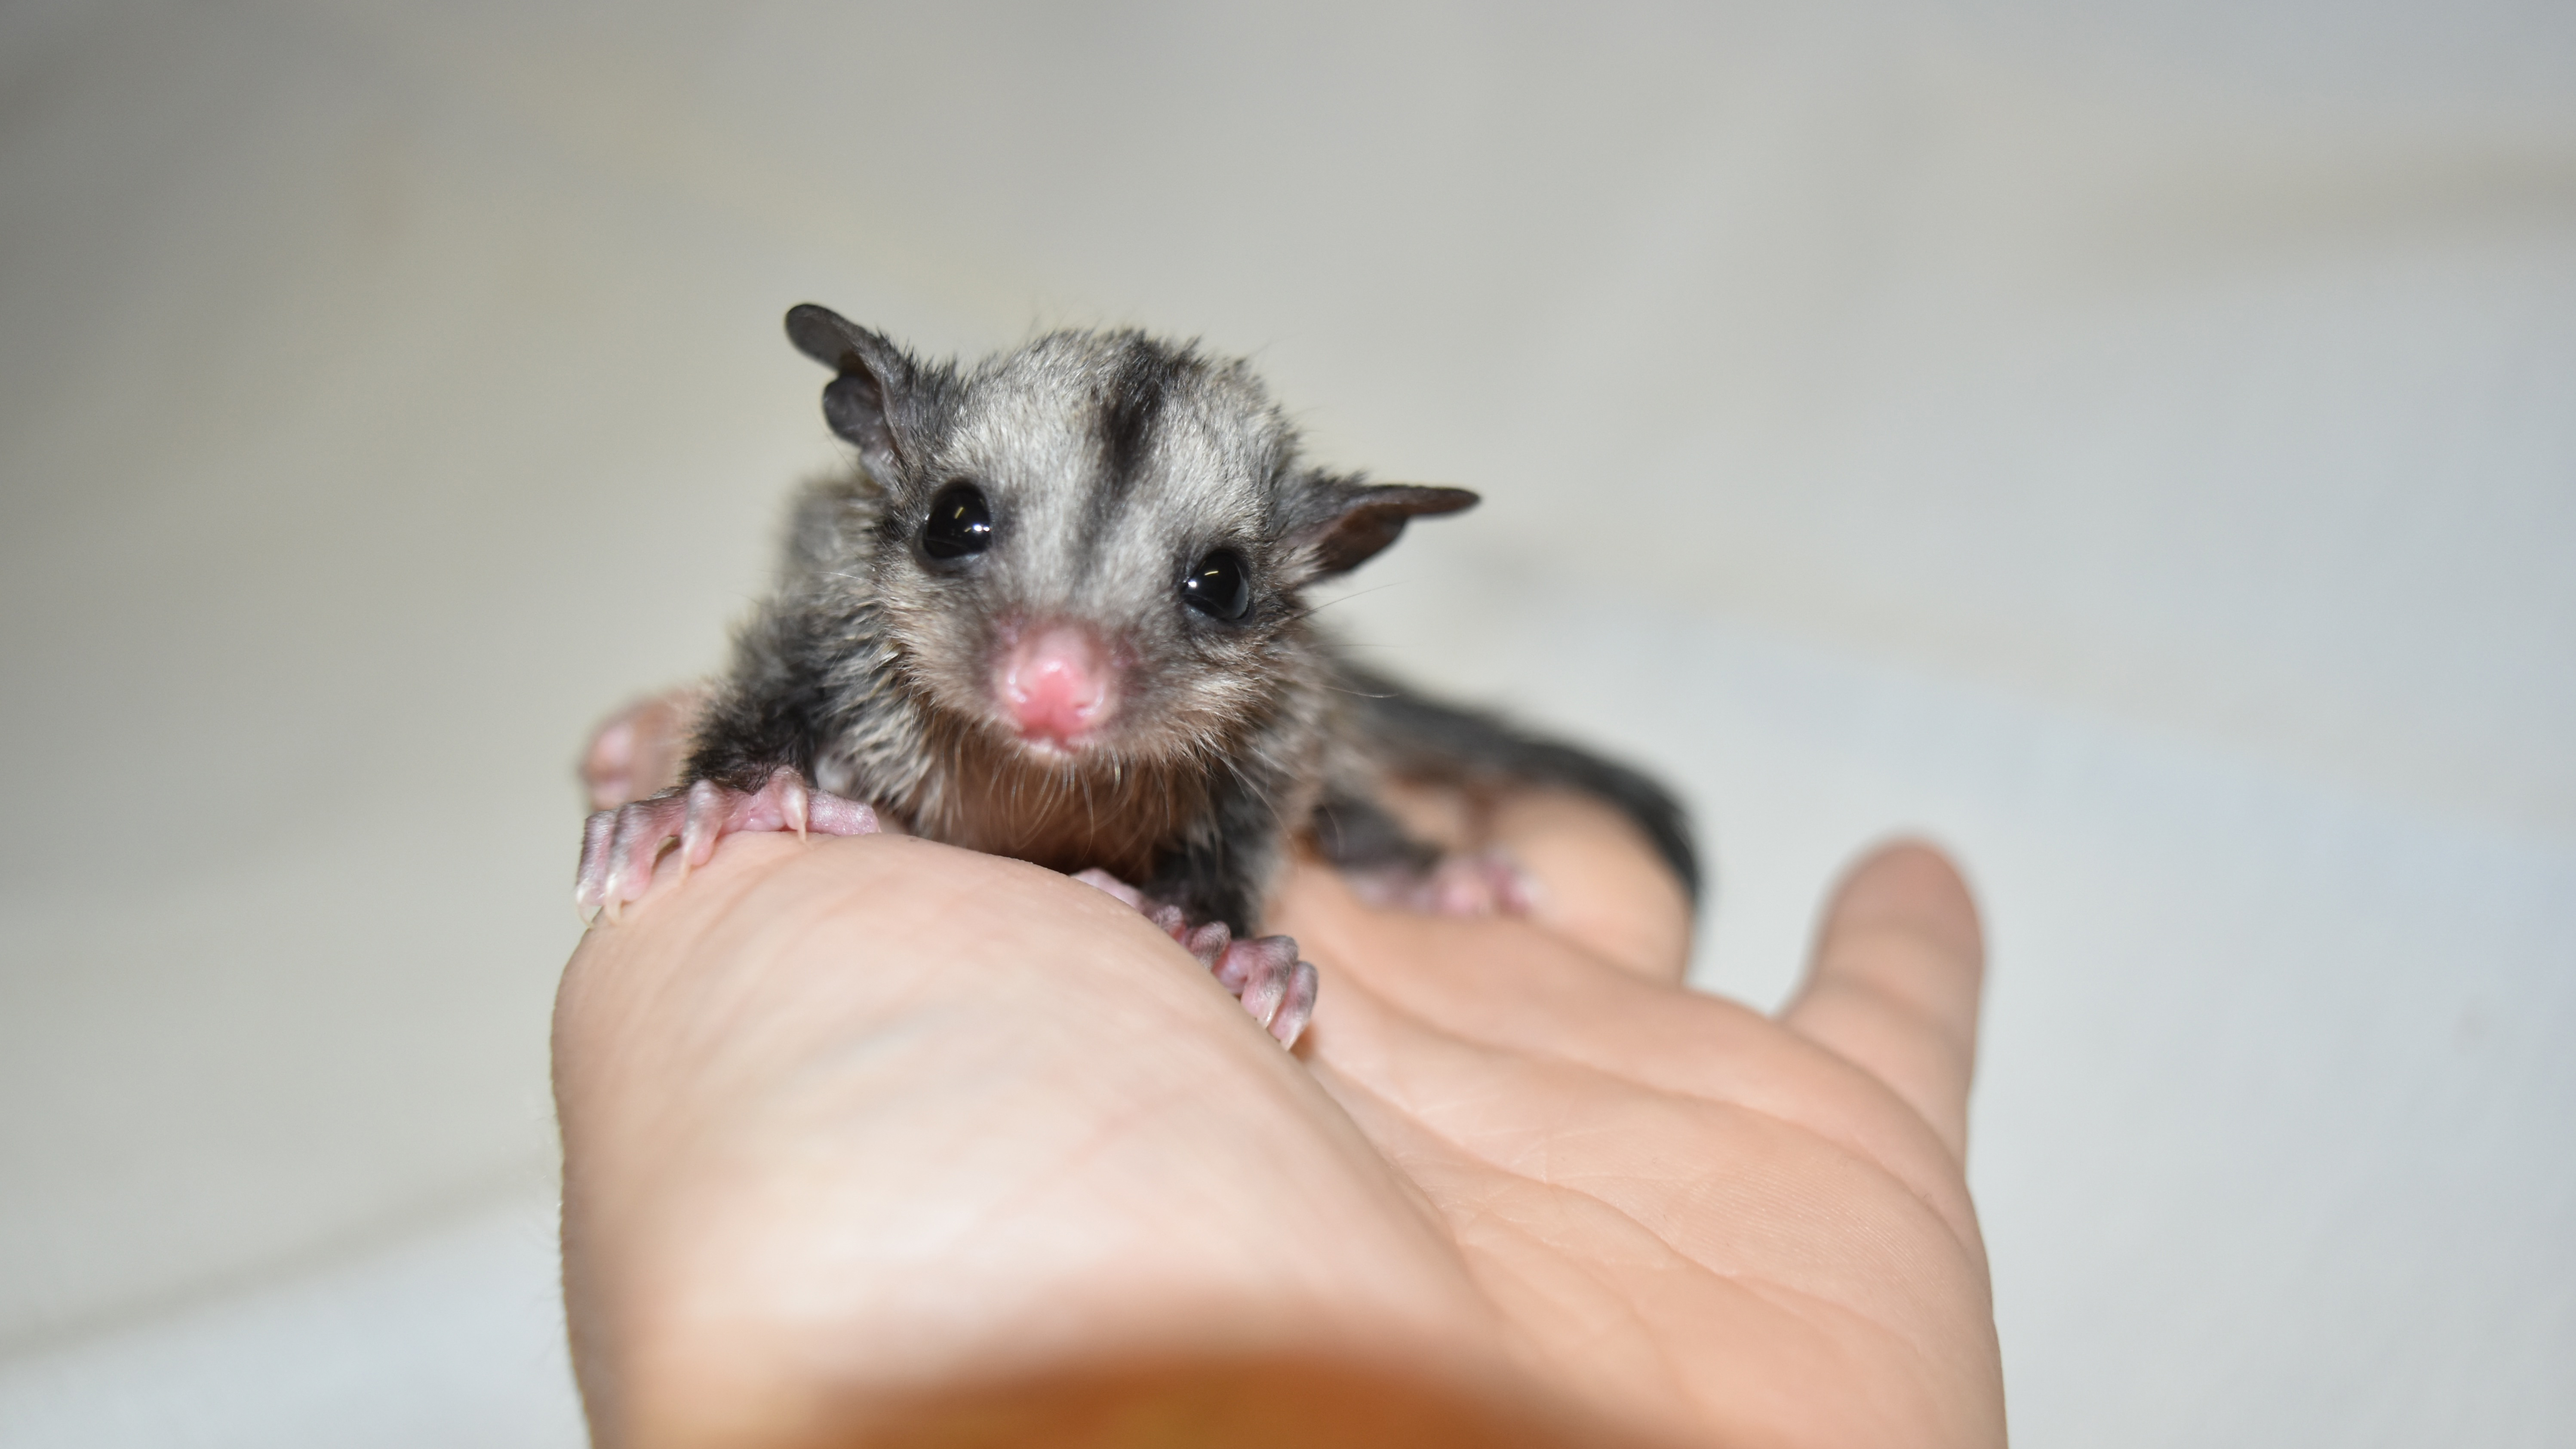 Three baby sugar gliders were handed in to The Australian Reptile Park overnight. (Tim Faulkner / Australian Reptile Park)